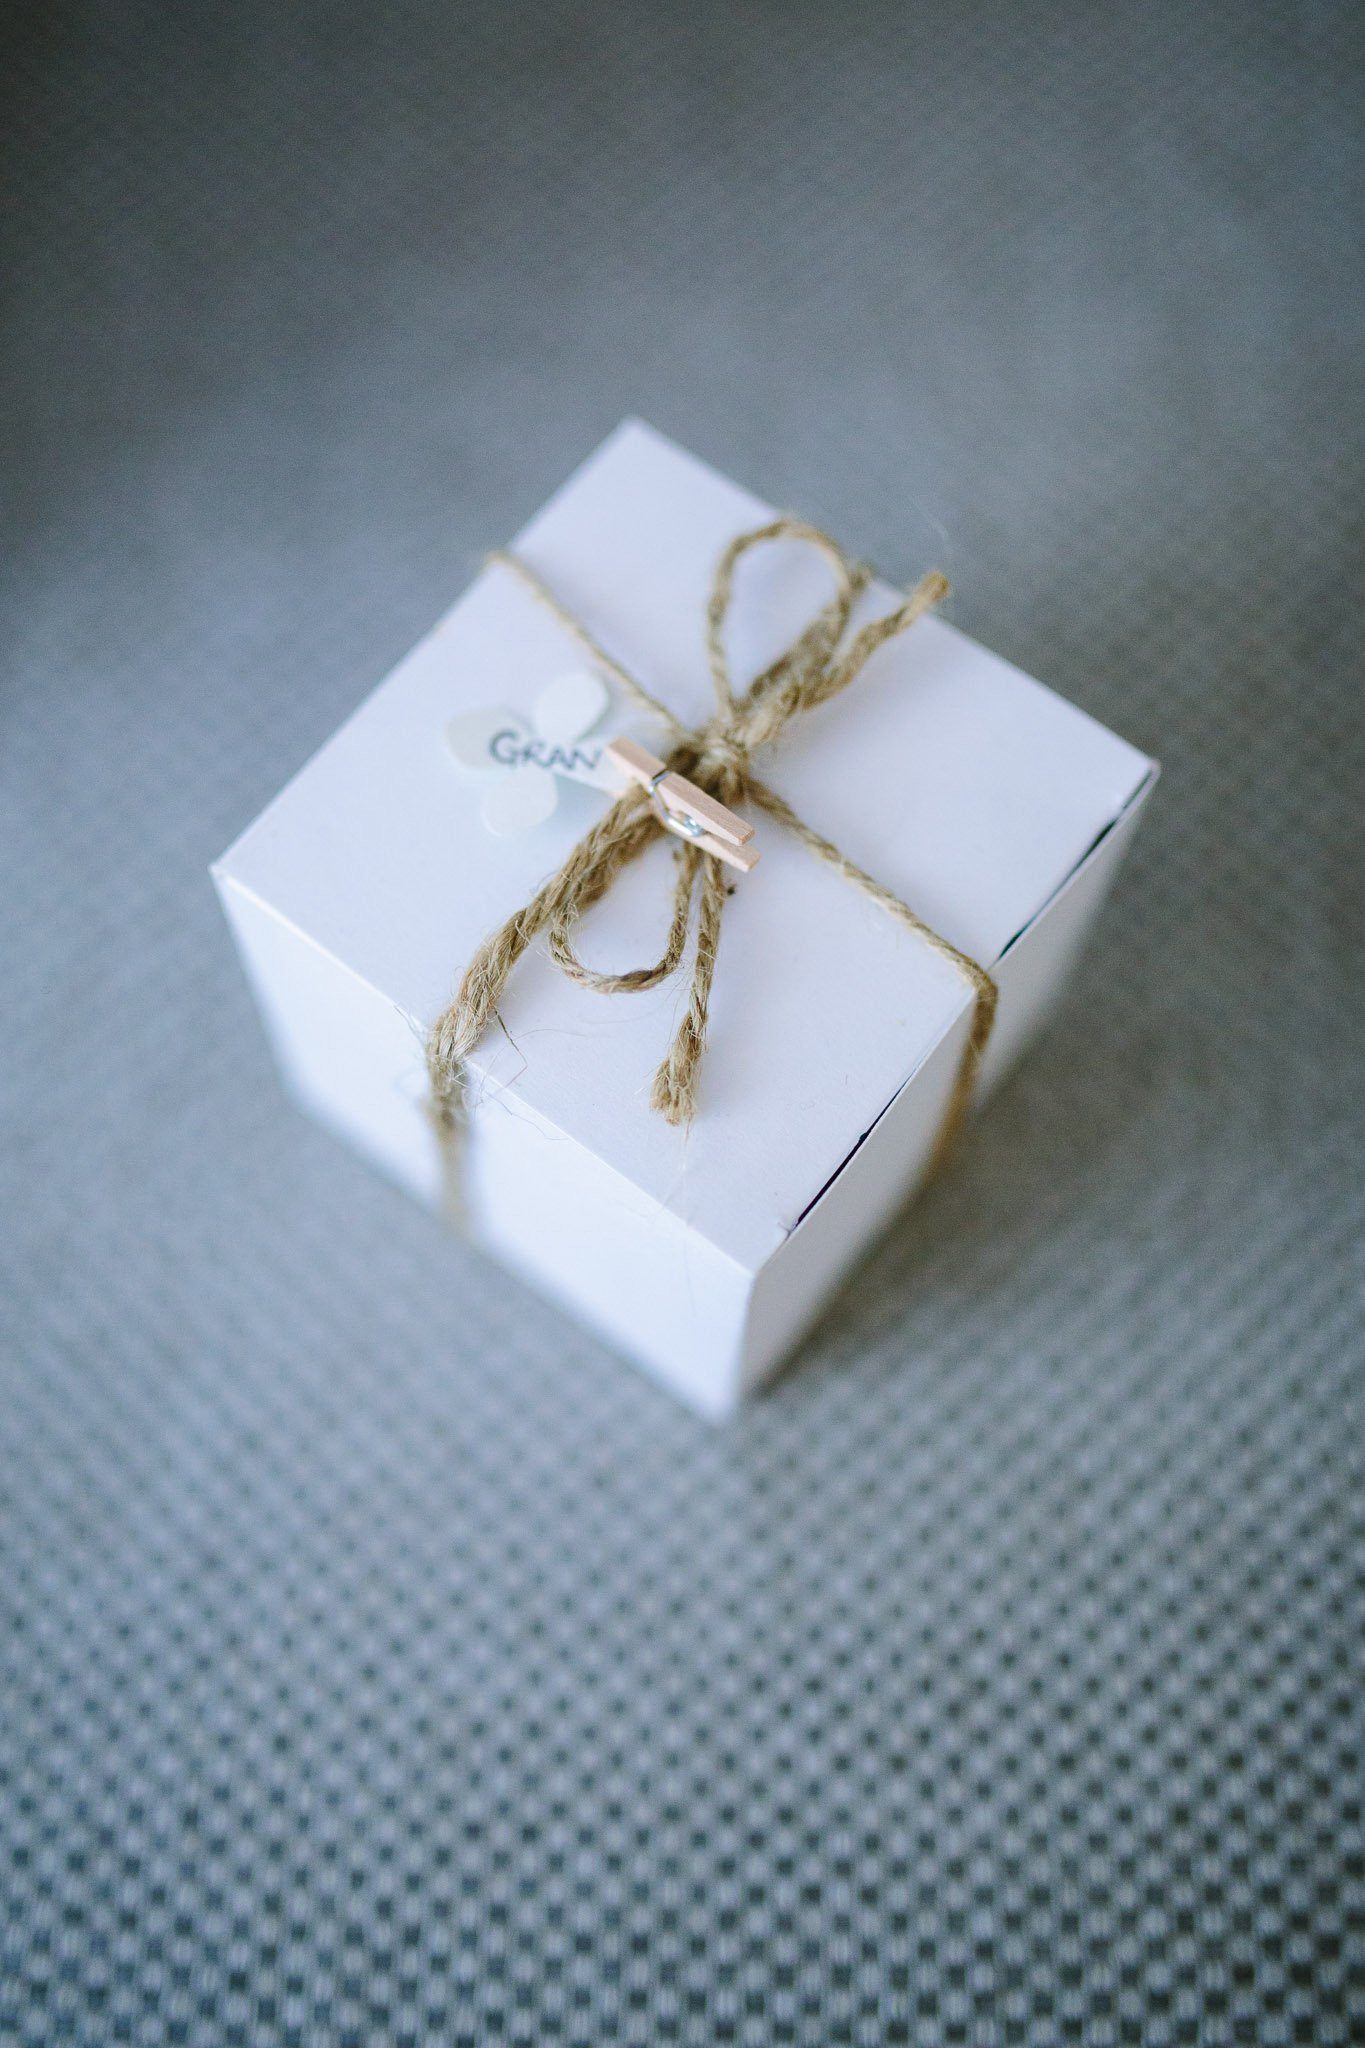 Small boxed gift